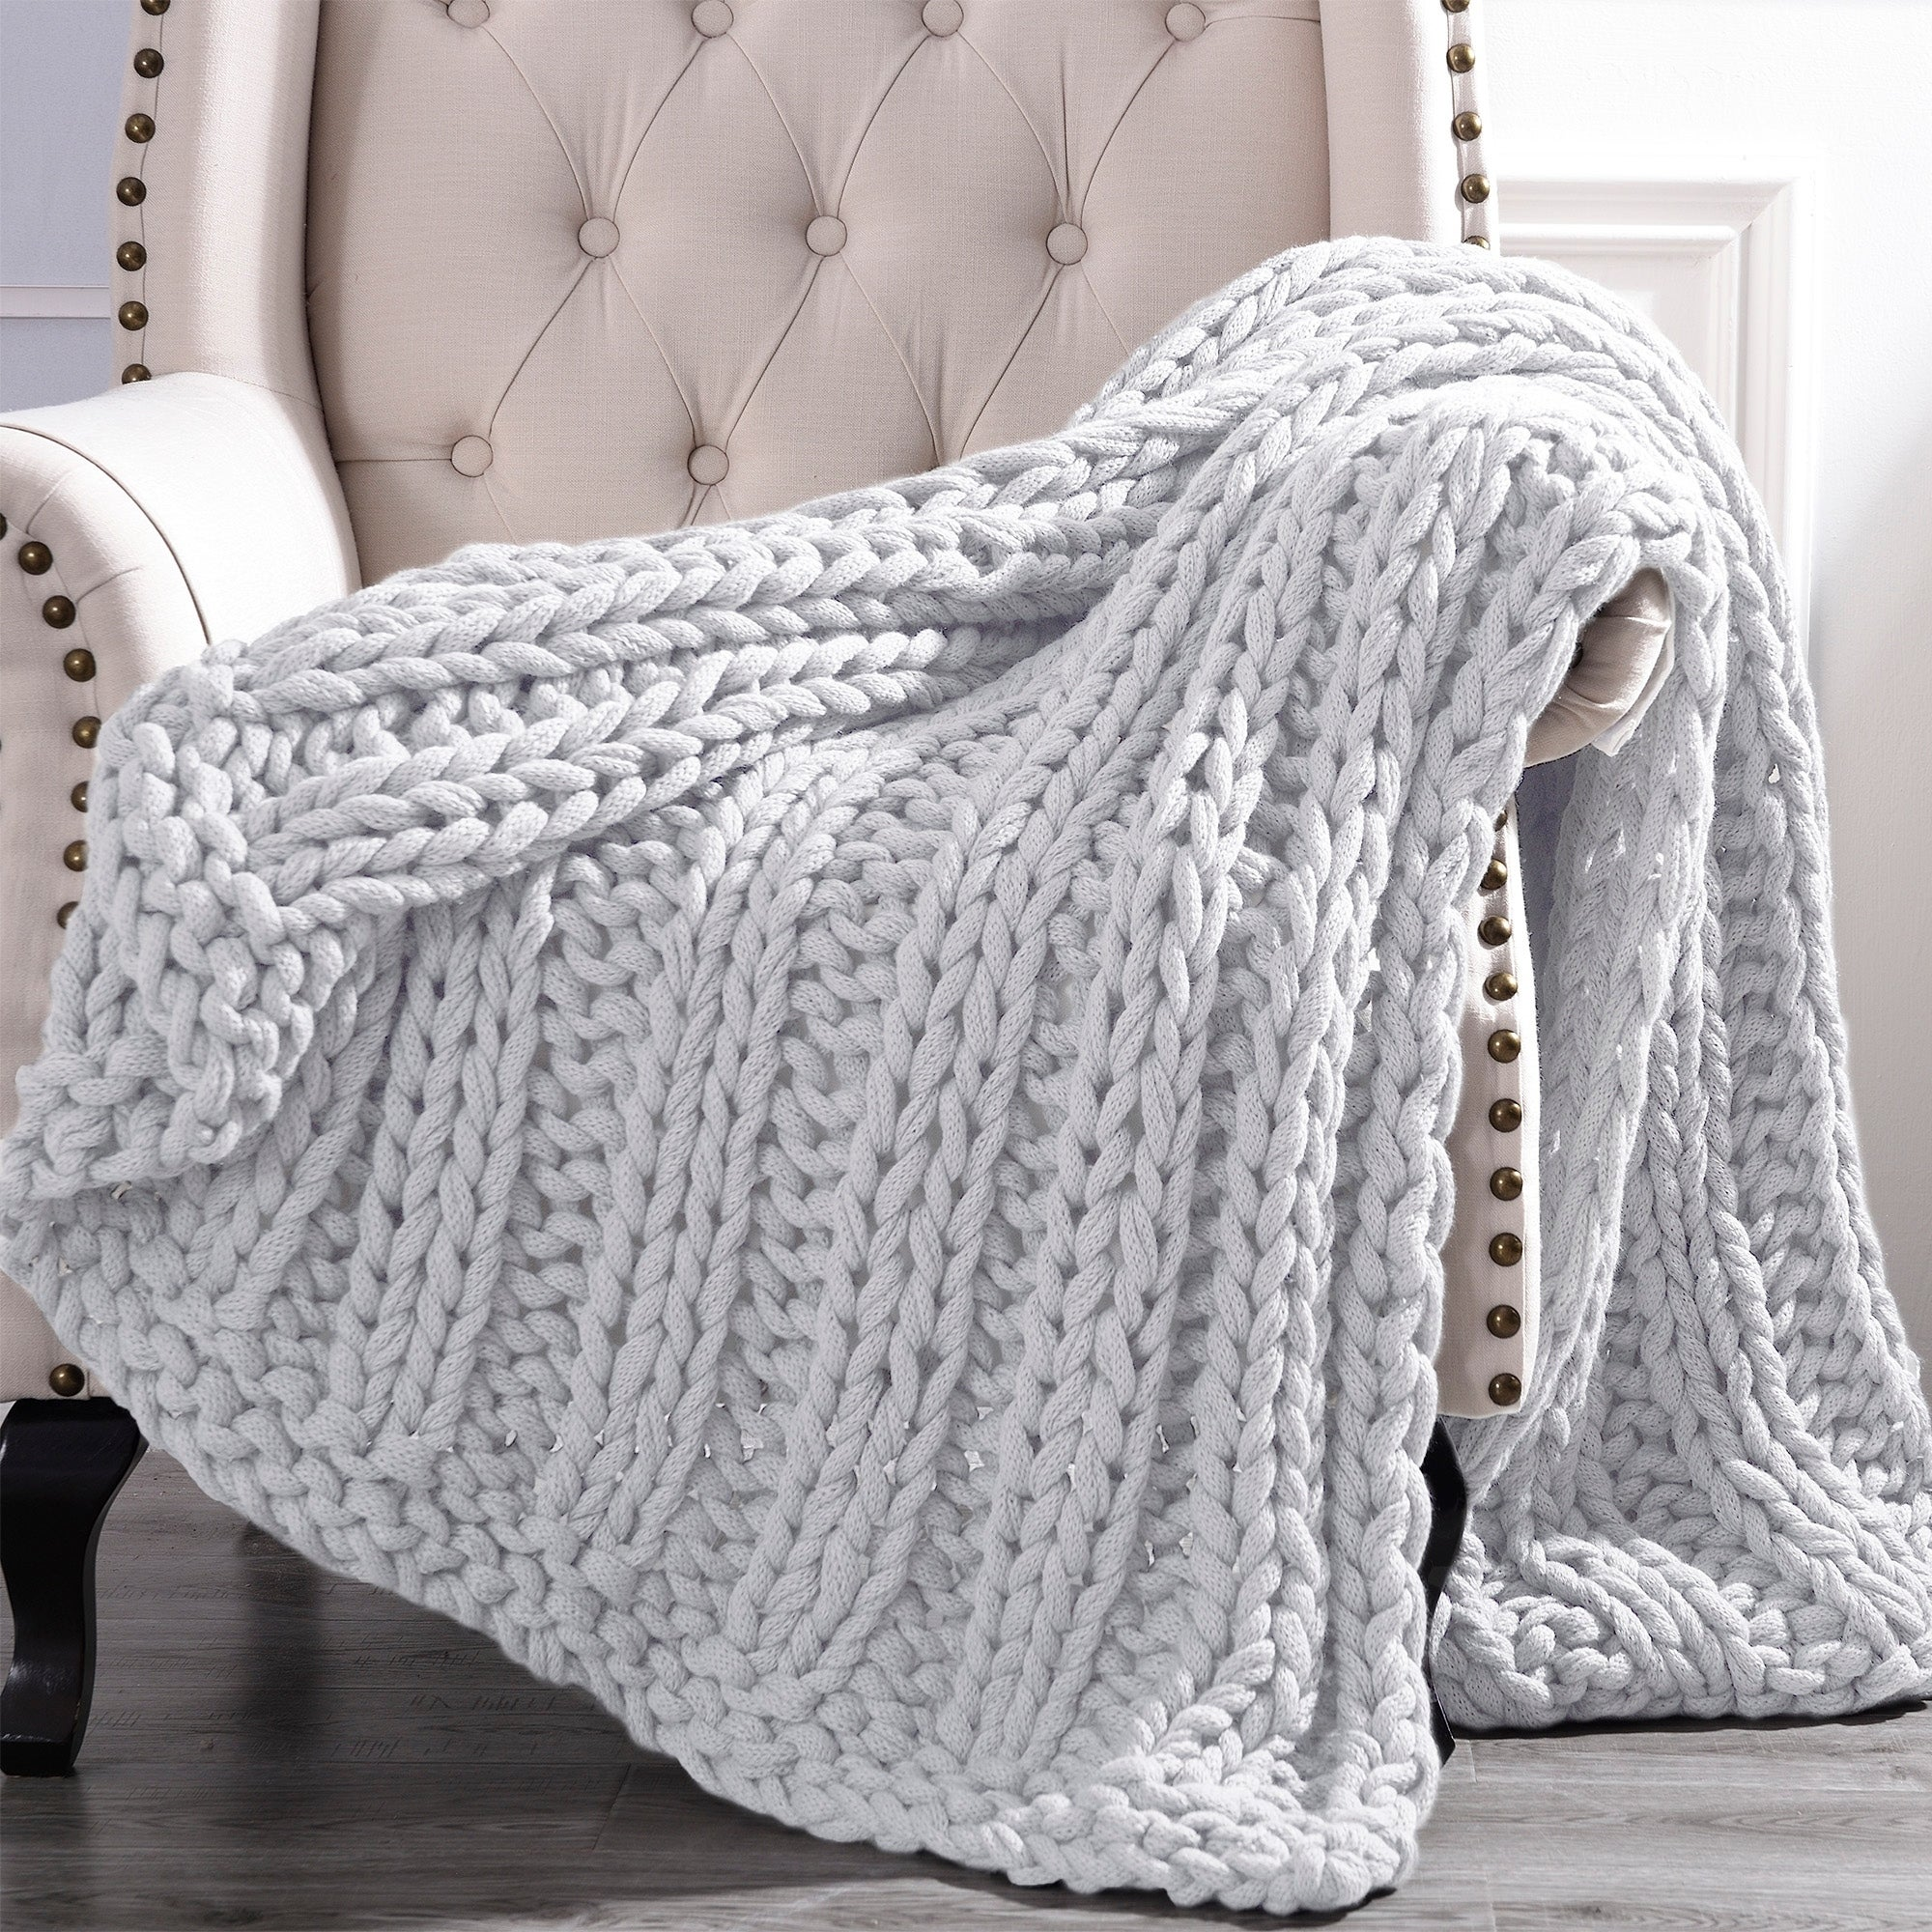 Amrapur Overseas Luxury Chunky Knit Acrylic Bed Sofa Throw